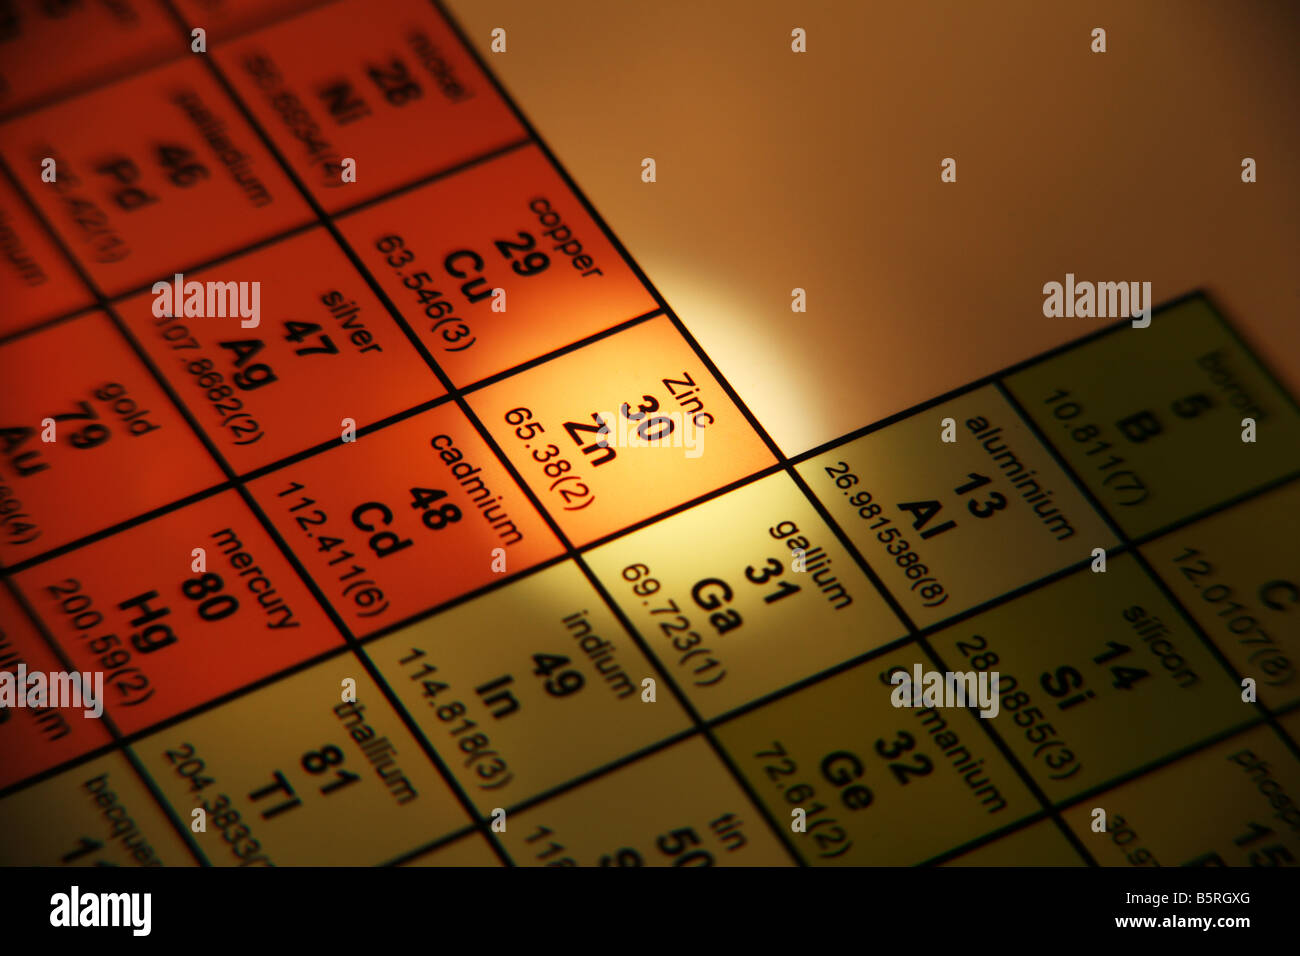 Periodic table of elements zinc stock photo royalty free image periodic table of elements zinc gamestrikefo Gallery